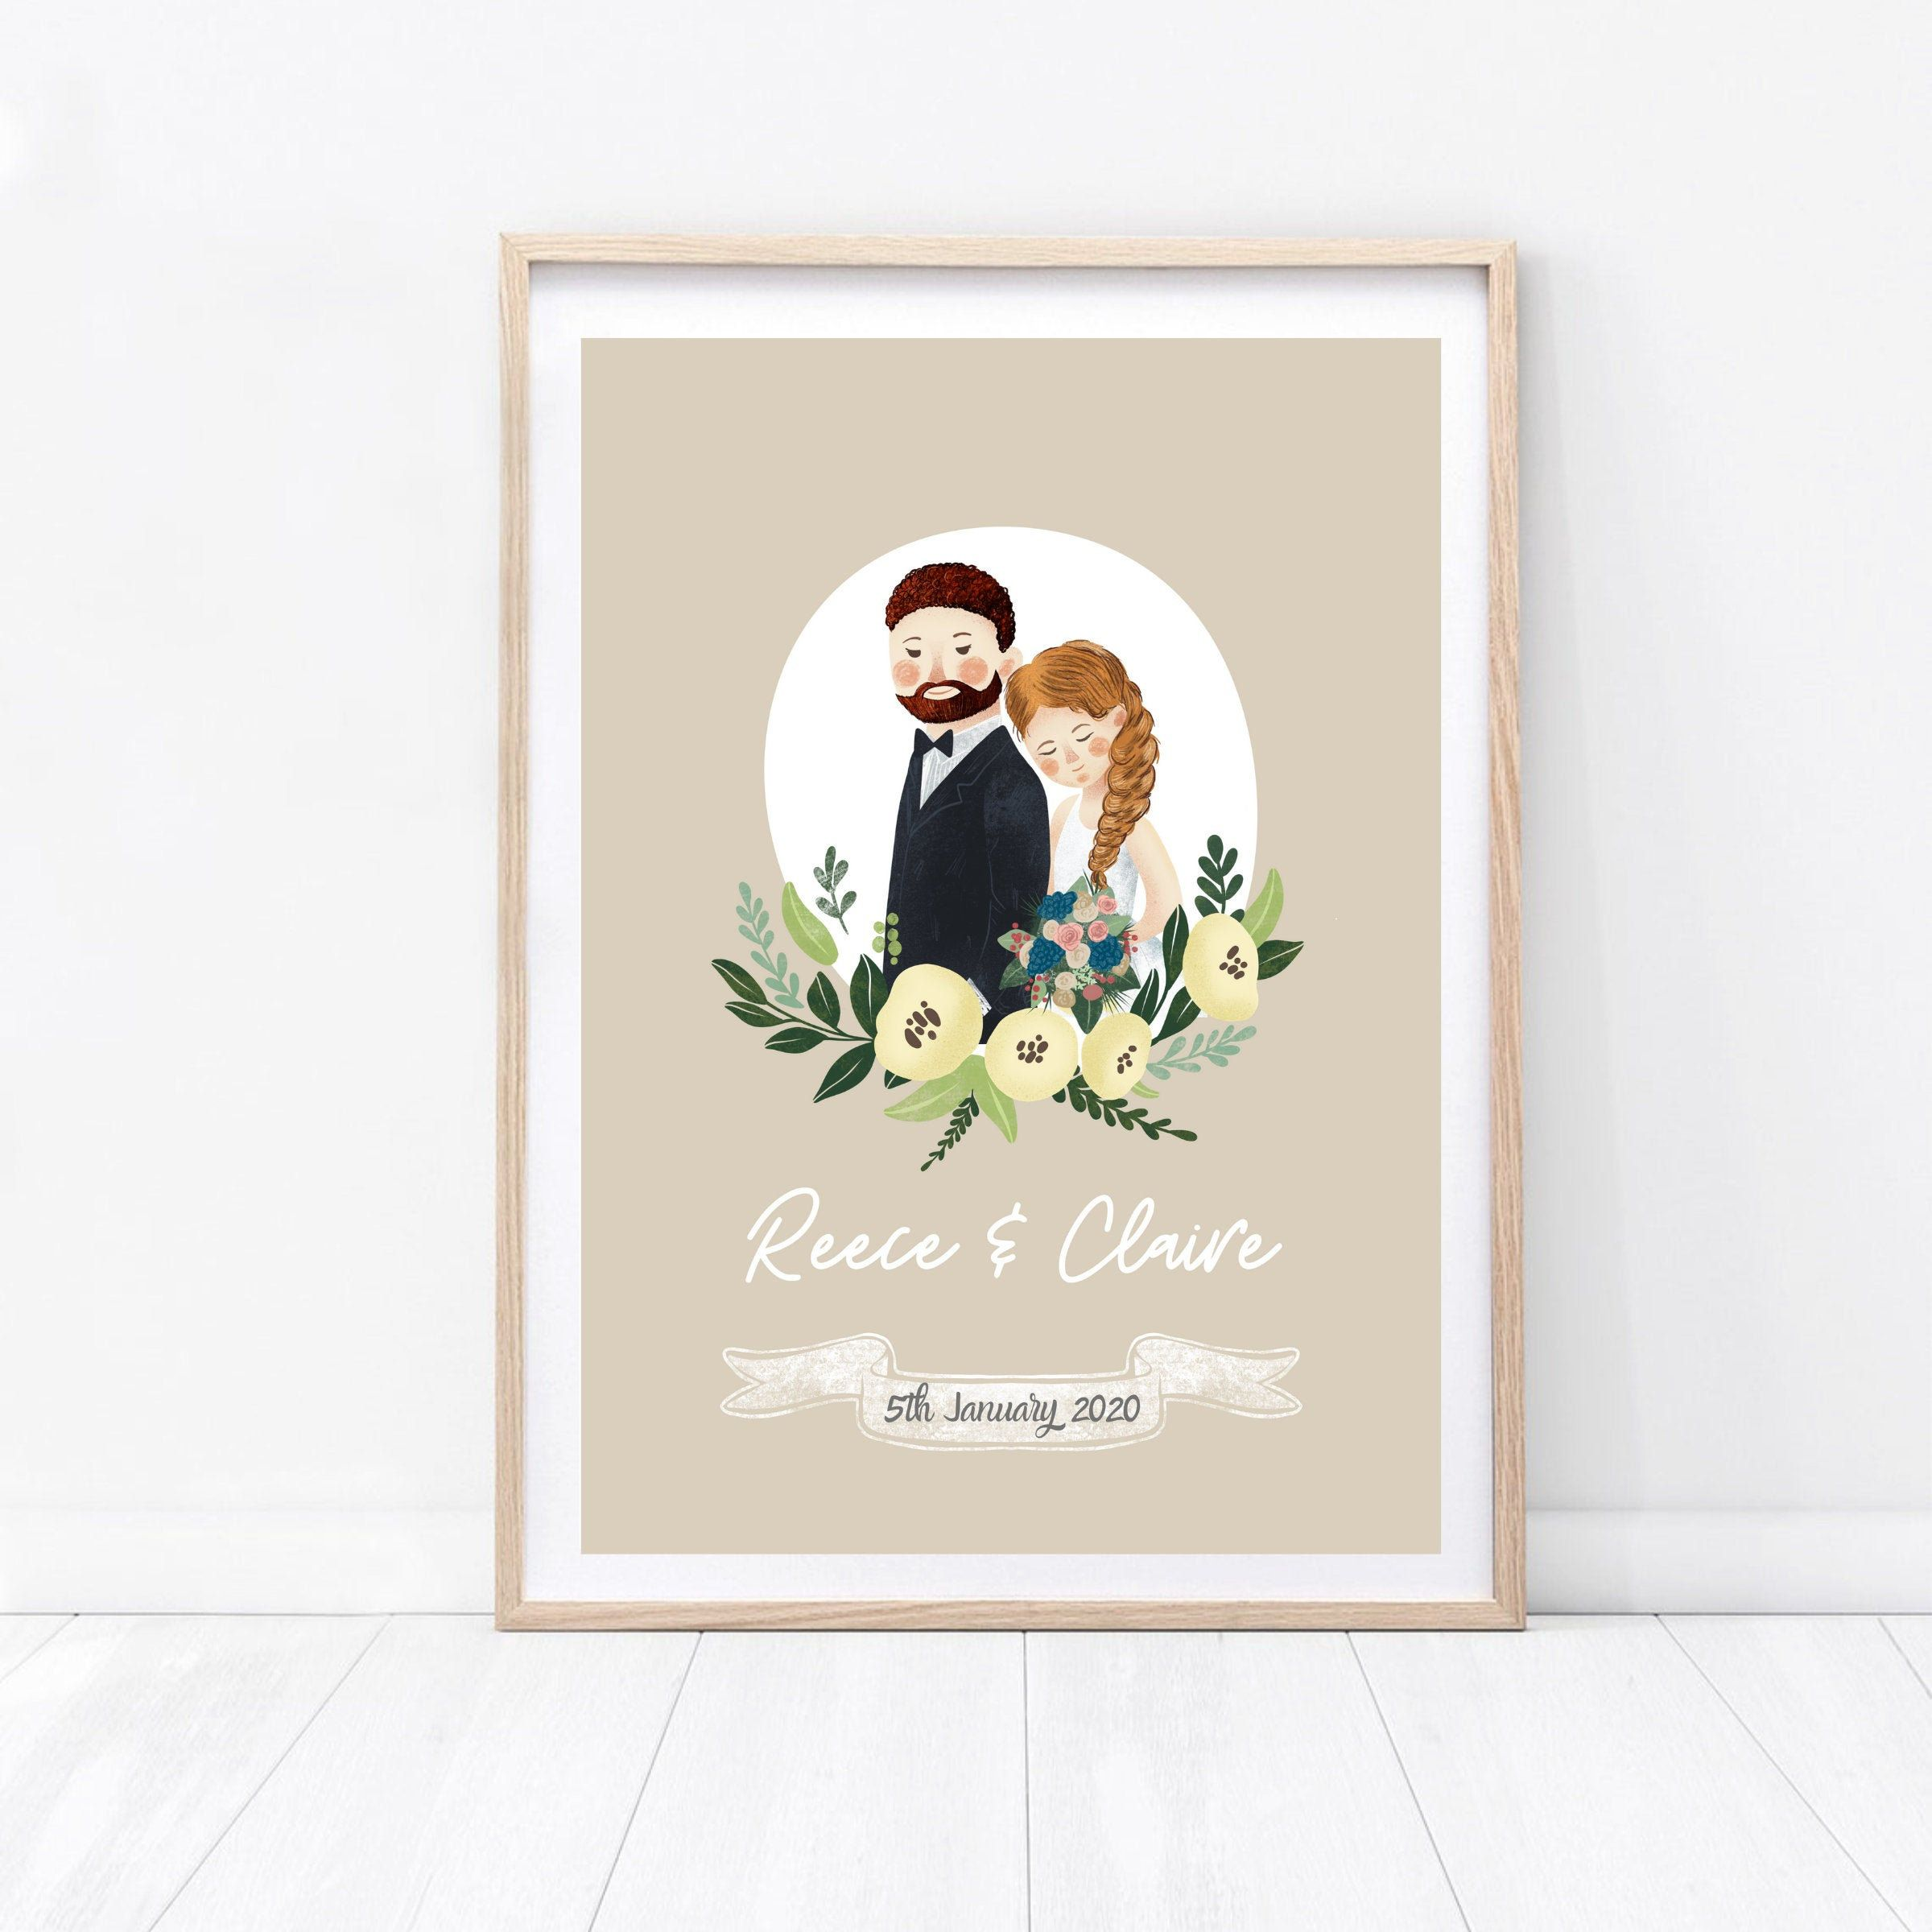 Weddng Print Personalised Wedding Print Gift For Bride Gift For Groom Couples Anniversary Print Gift For Bride And Groom Wedding